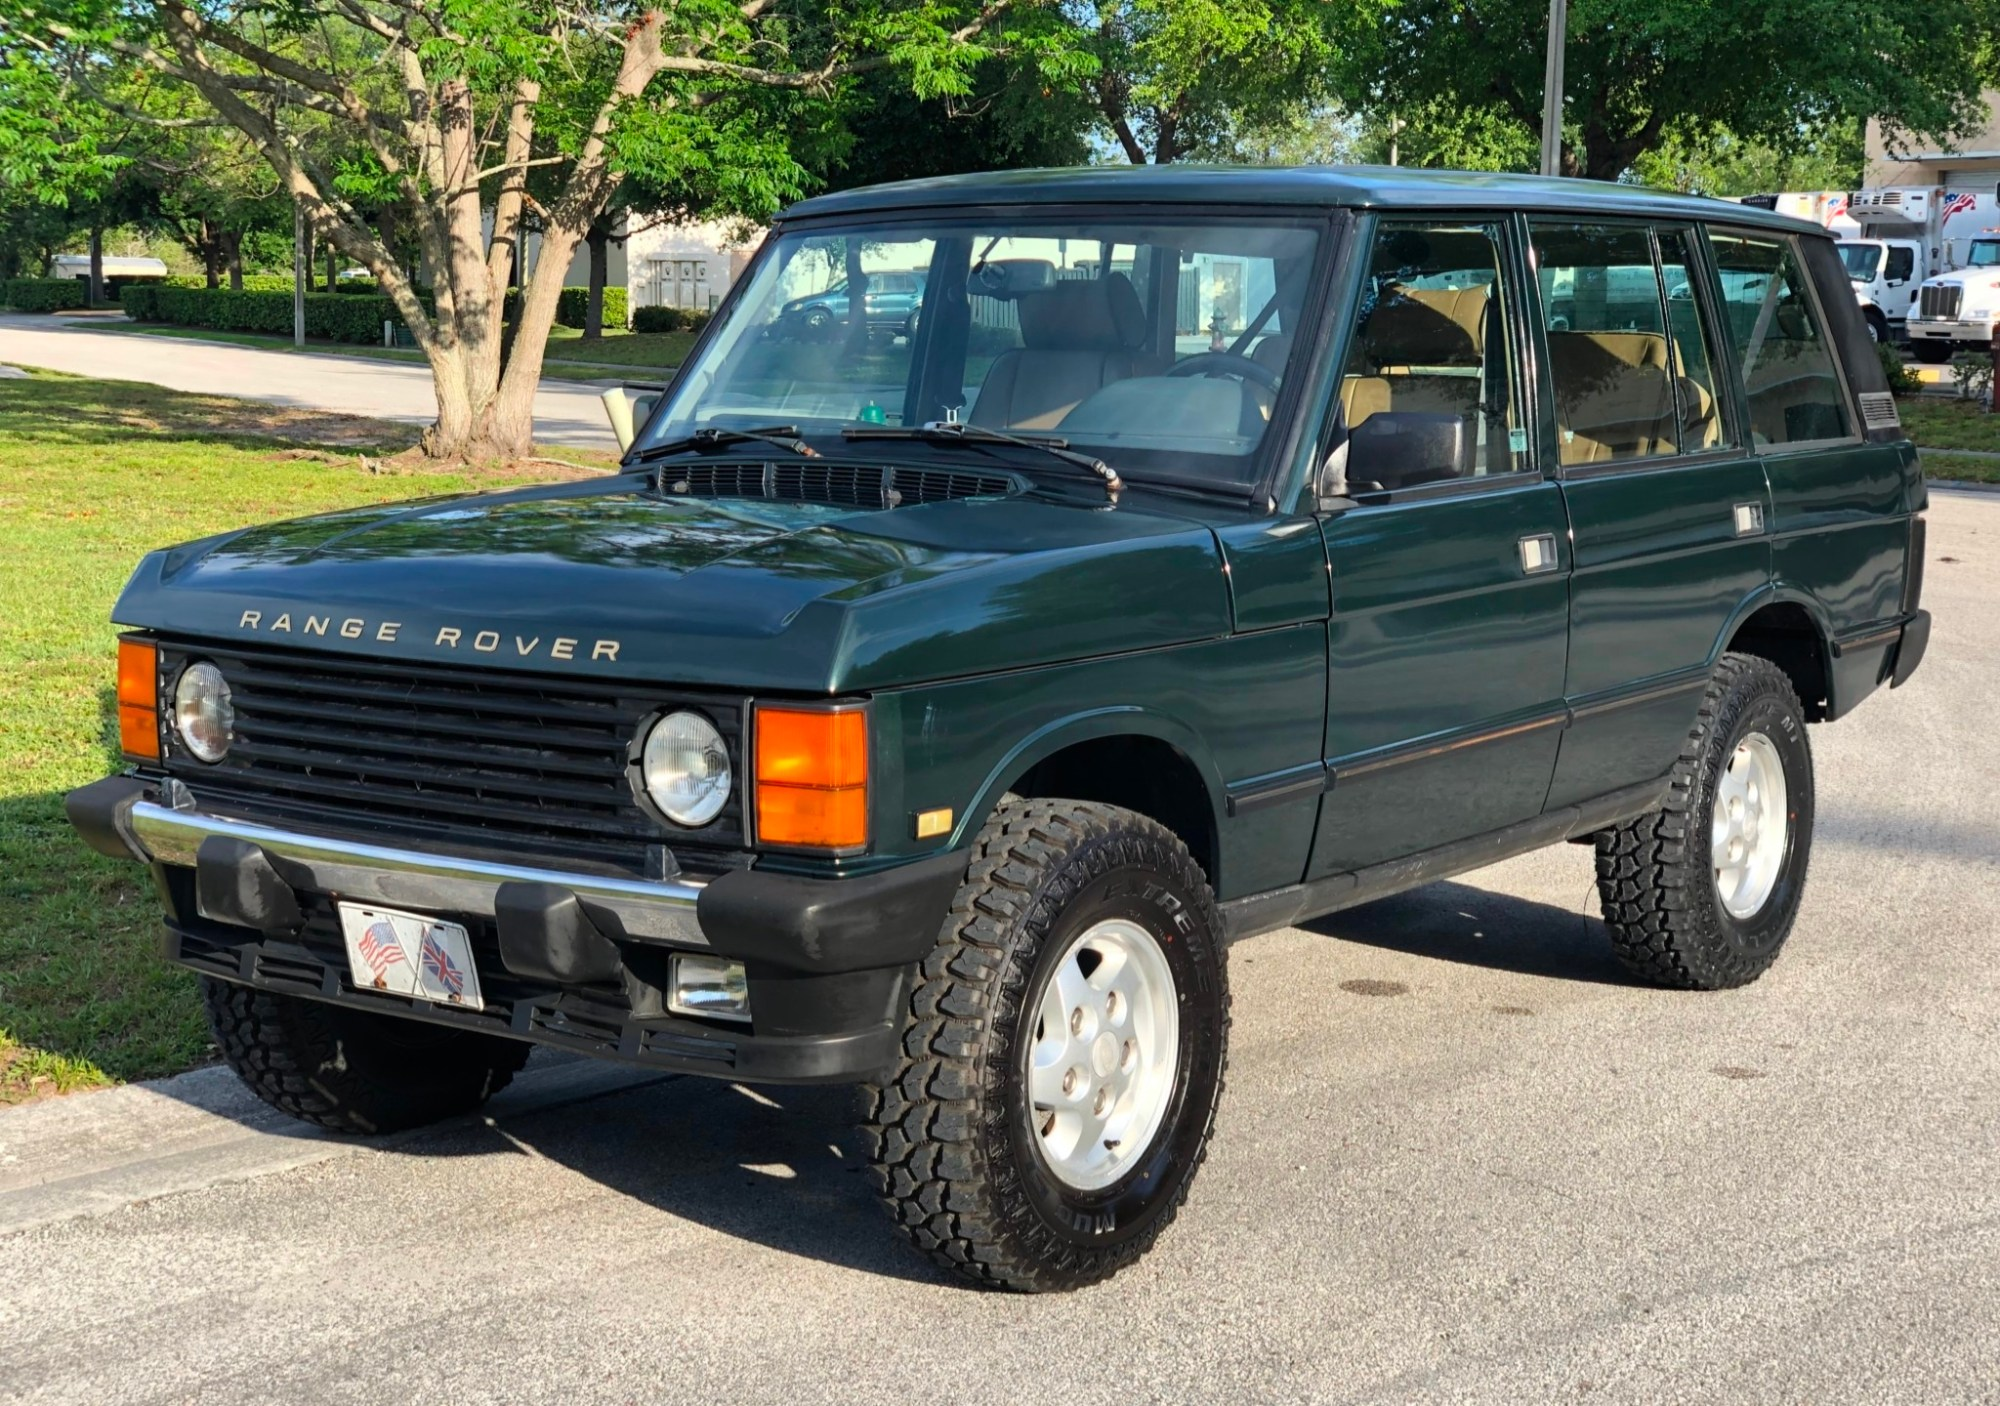 hight resolution of 1995 range rover classic for sale on bat auctions sold for 6 100 on may 10 2019 lot 18 729 bring a trailer